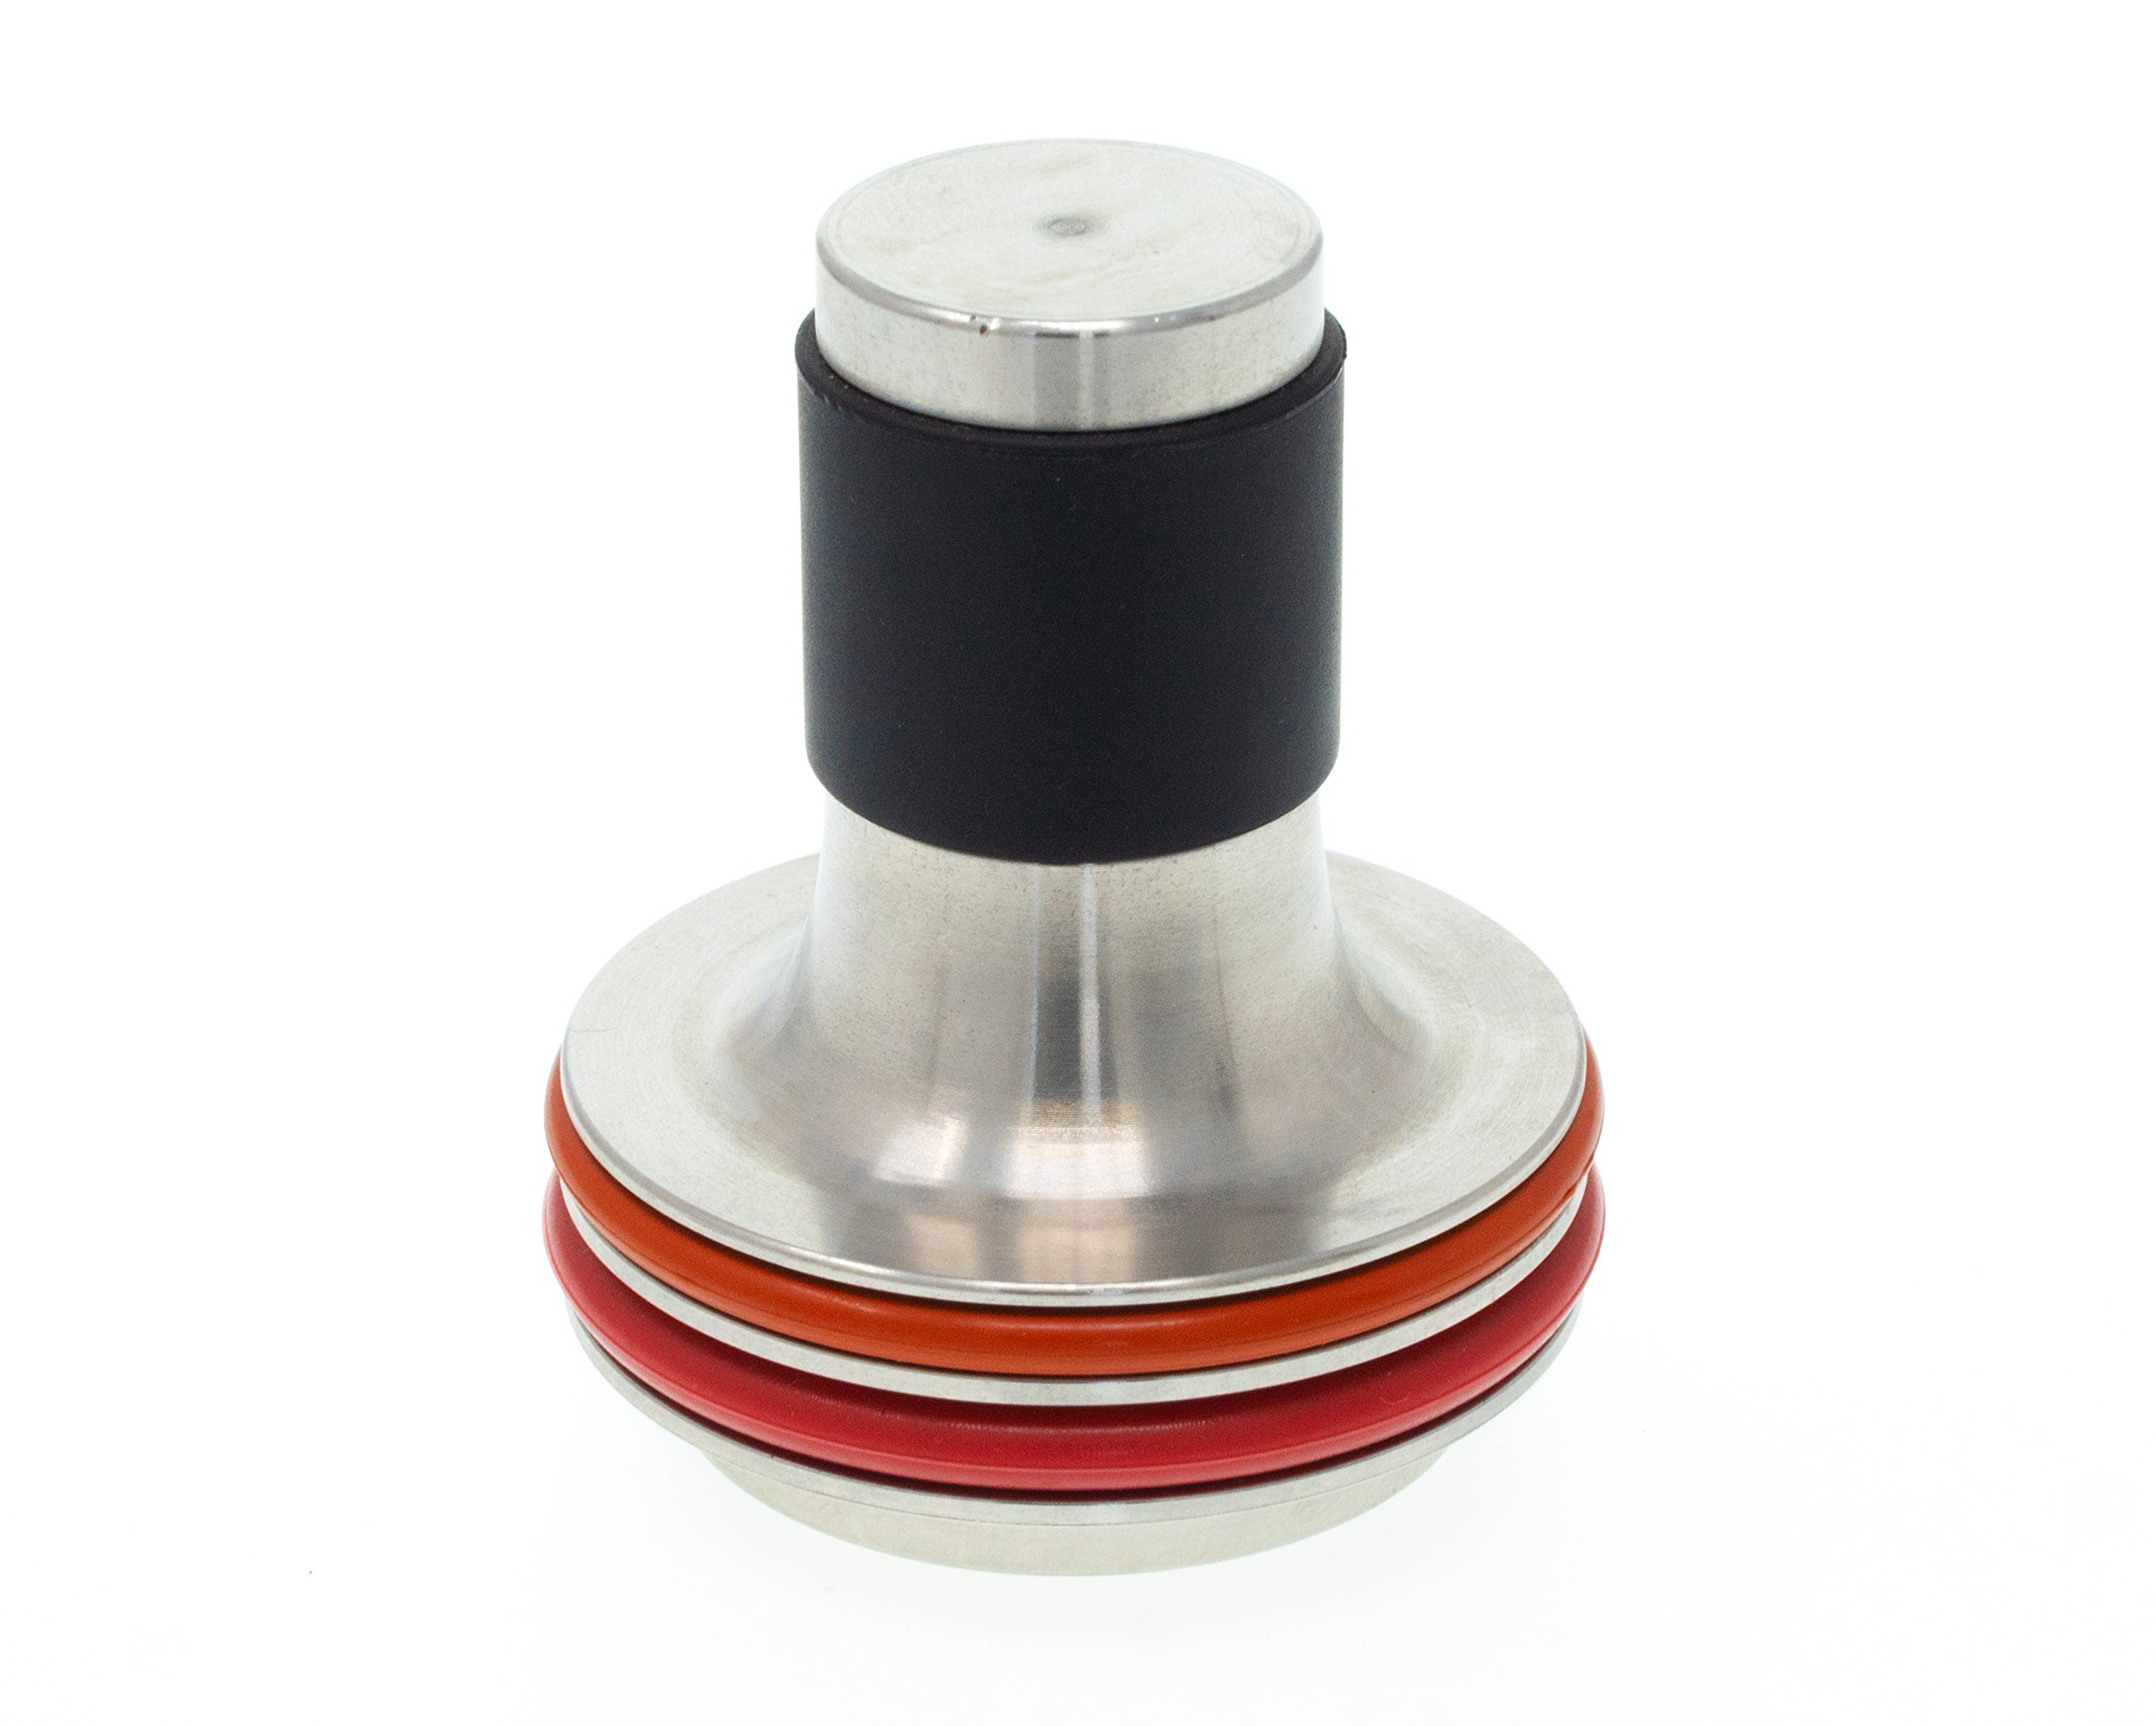 Stainless Steel Piston for Flair Espresso Maker